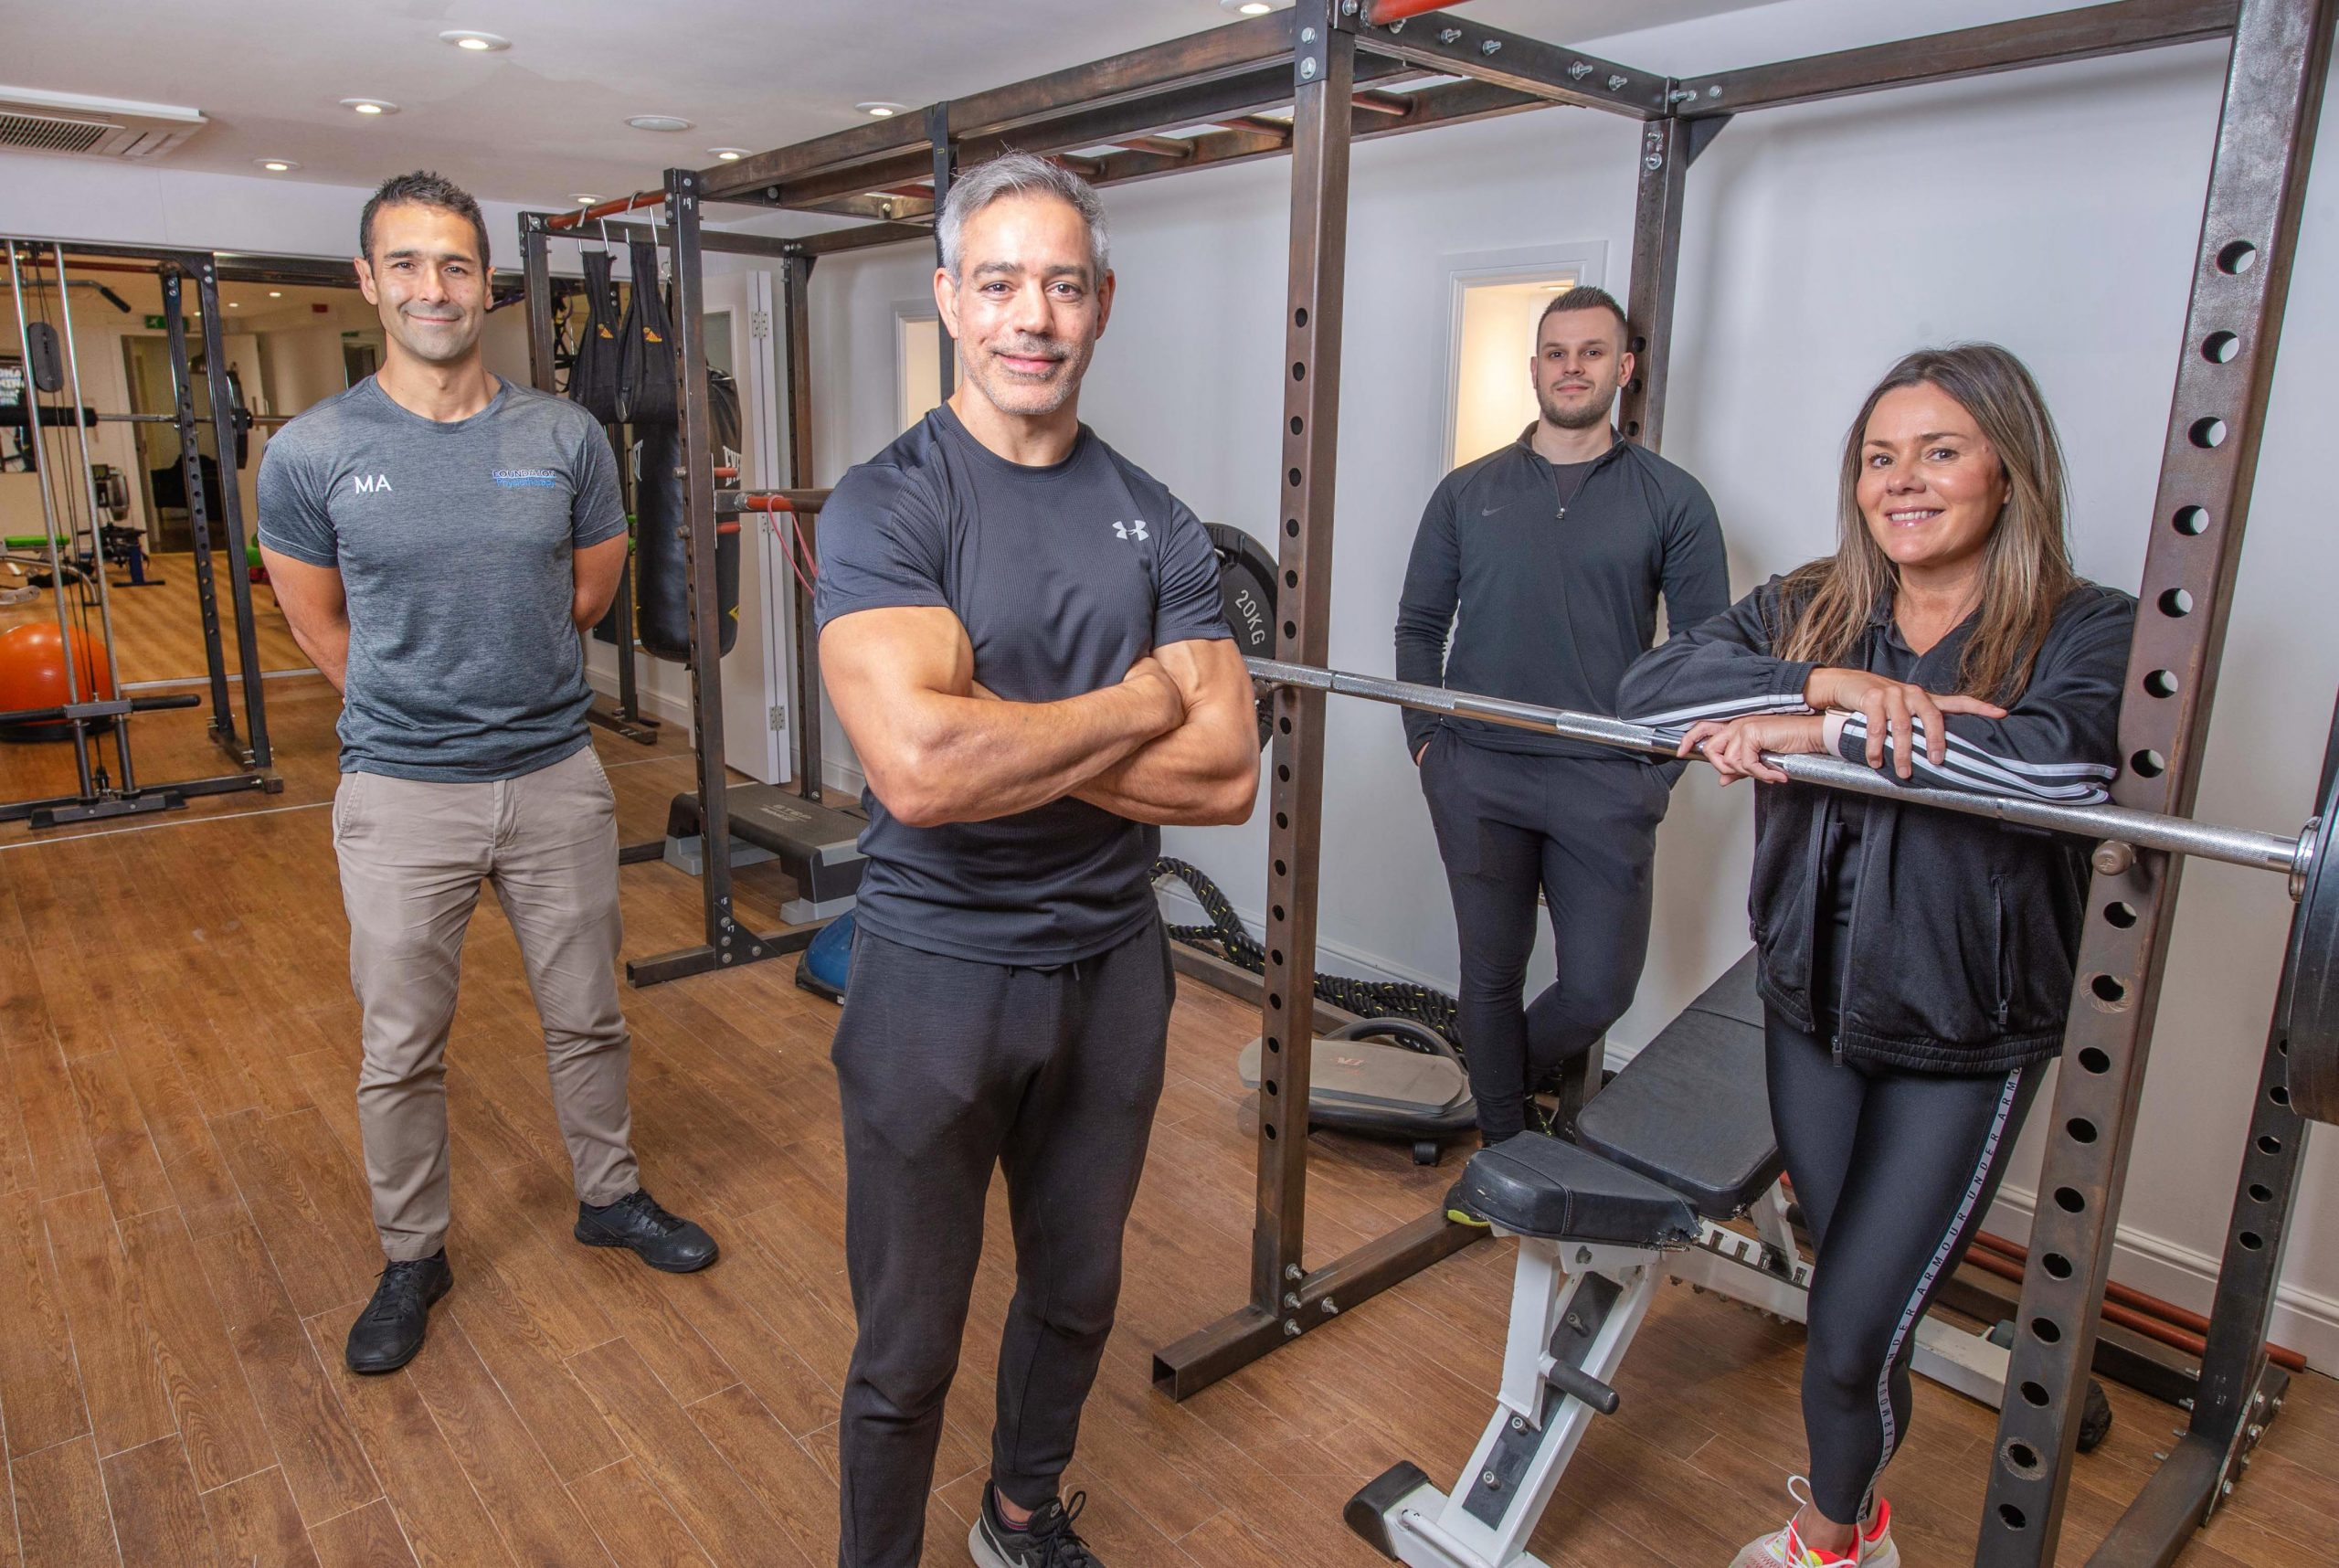 FORMER PRO RUGBY LEAGUE PLAYER LAUNCHES ONE-TO-ONE PERSONAL TRAINING AND WELLBEING STUDIO IN LEEDS CITY CENTRE